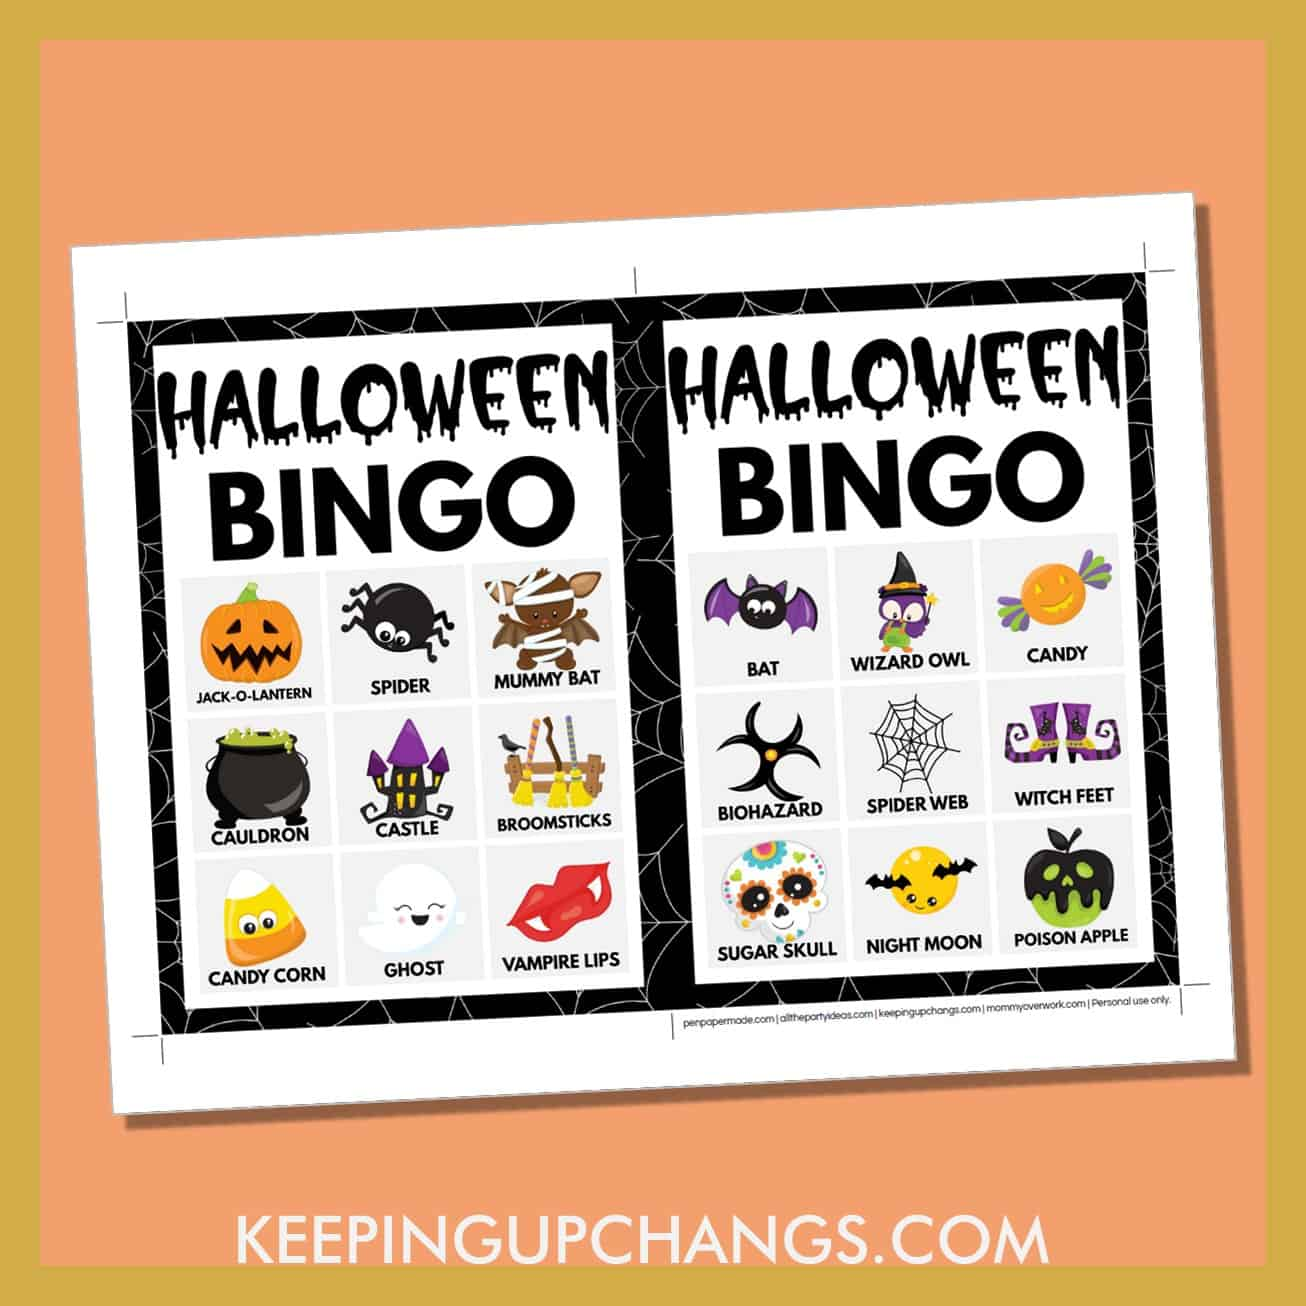 free fall halloween bingo card 3x3 5x7 game boards with images and text words.